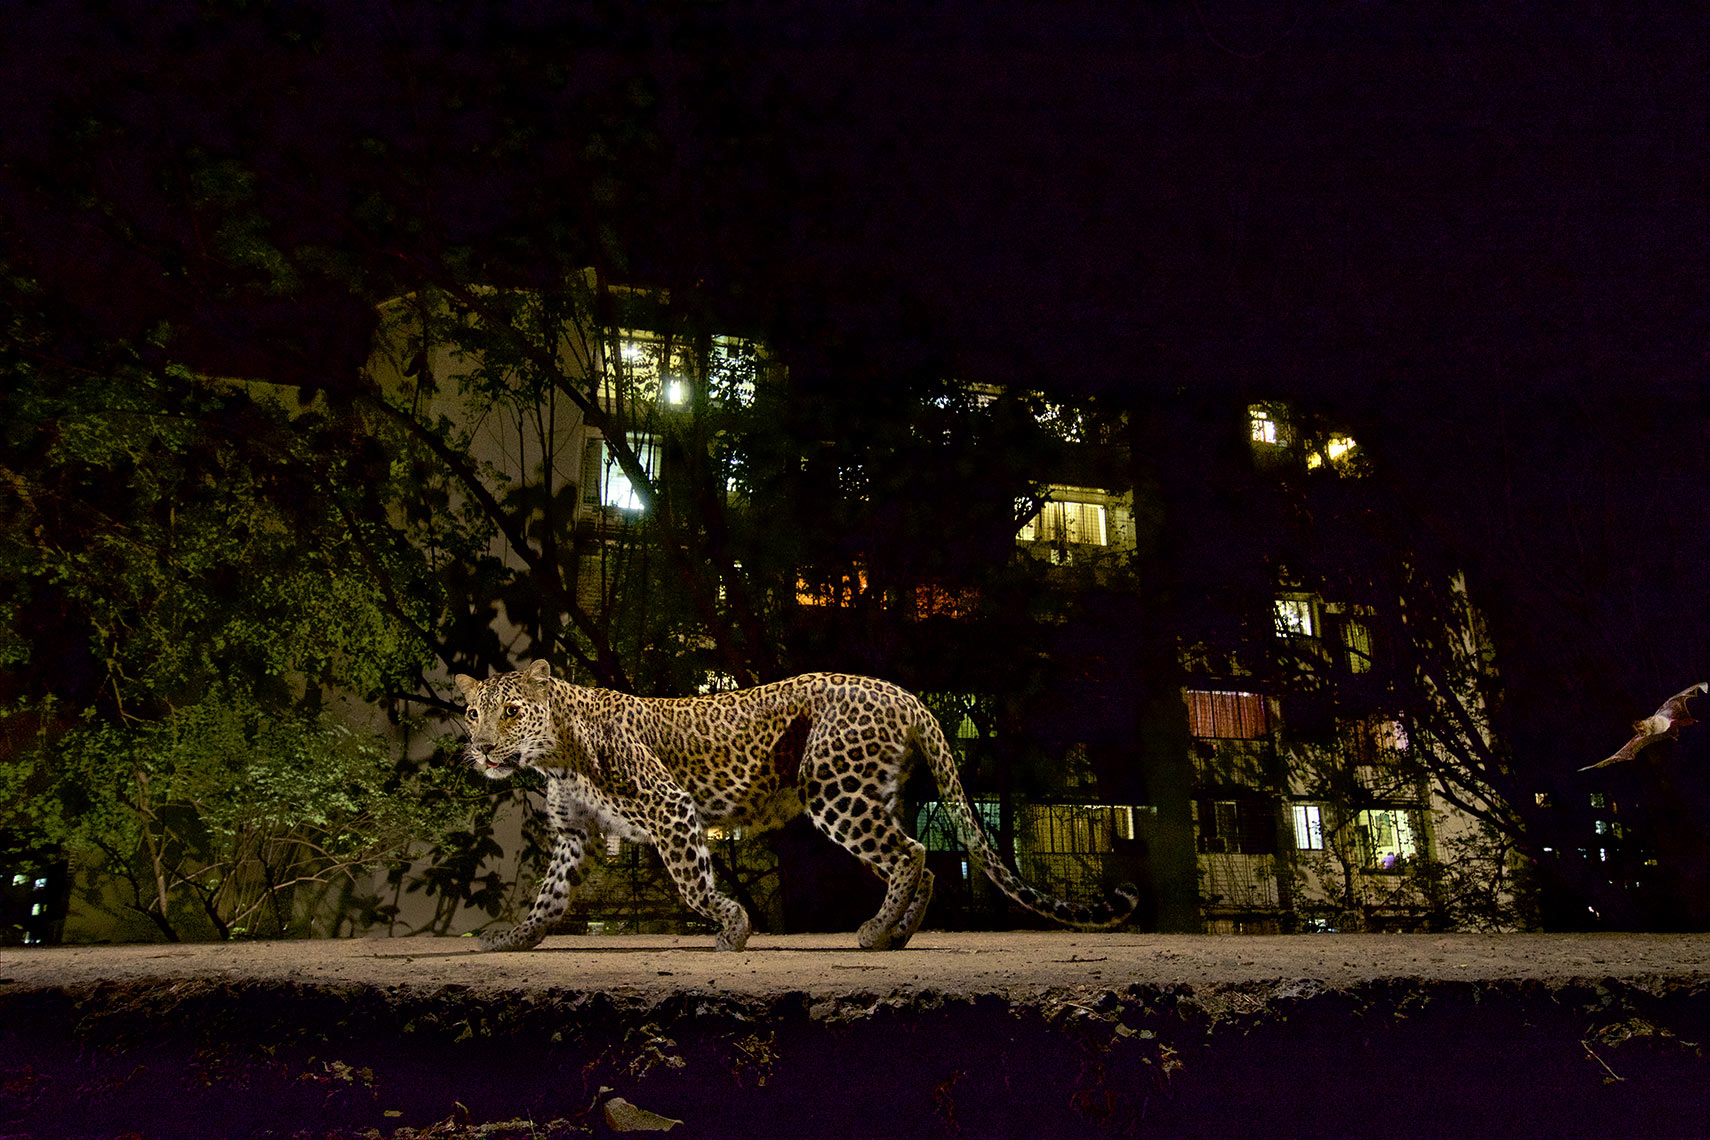 MM8196 Leopards - Sanjay Gandhi National Park, Mumbai, Maharashtra, India